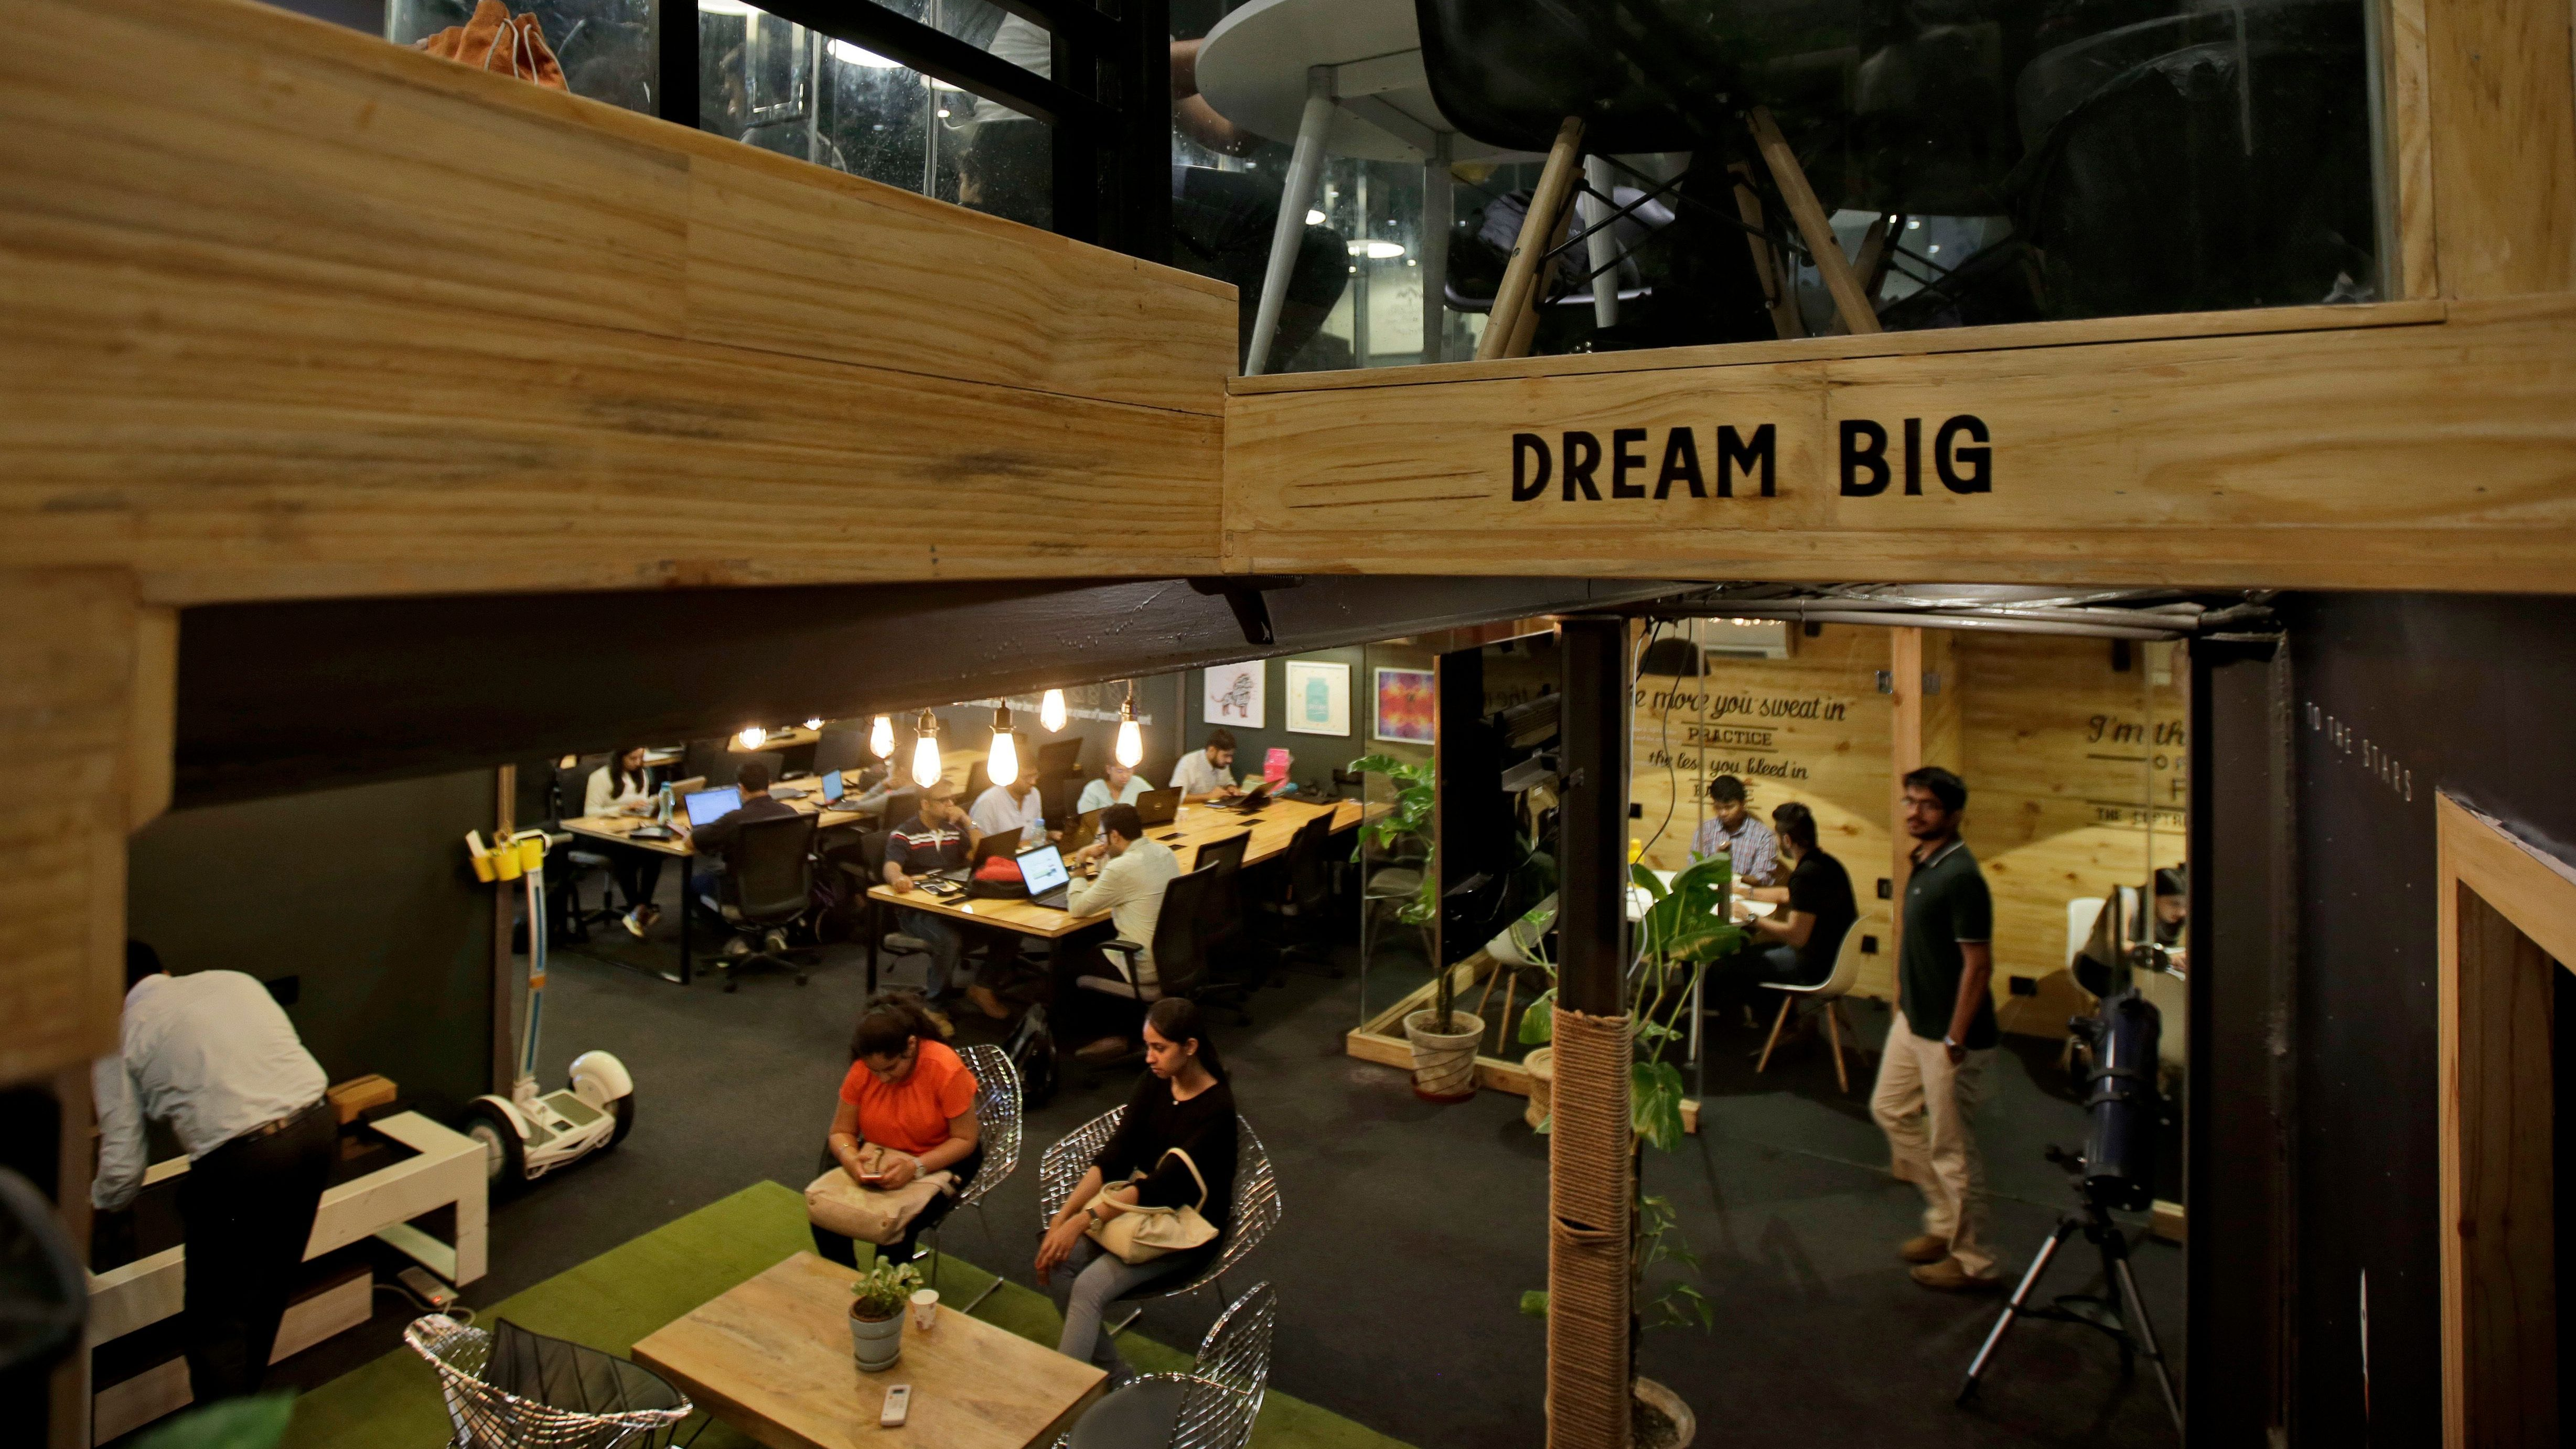 Indian startups hope for a boost in investment after angel tax relief